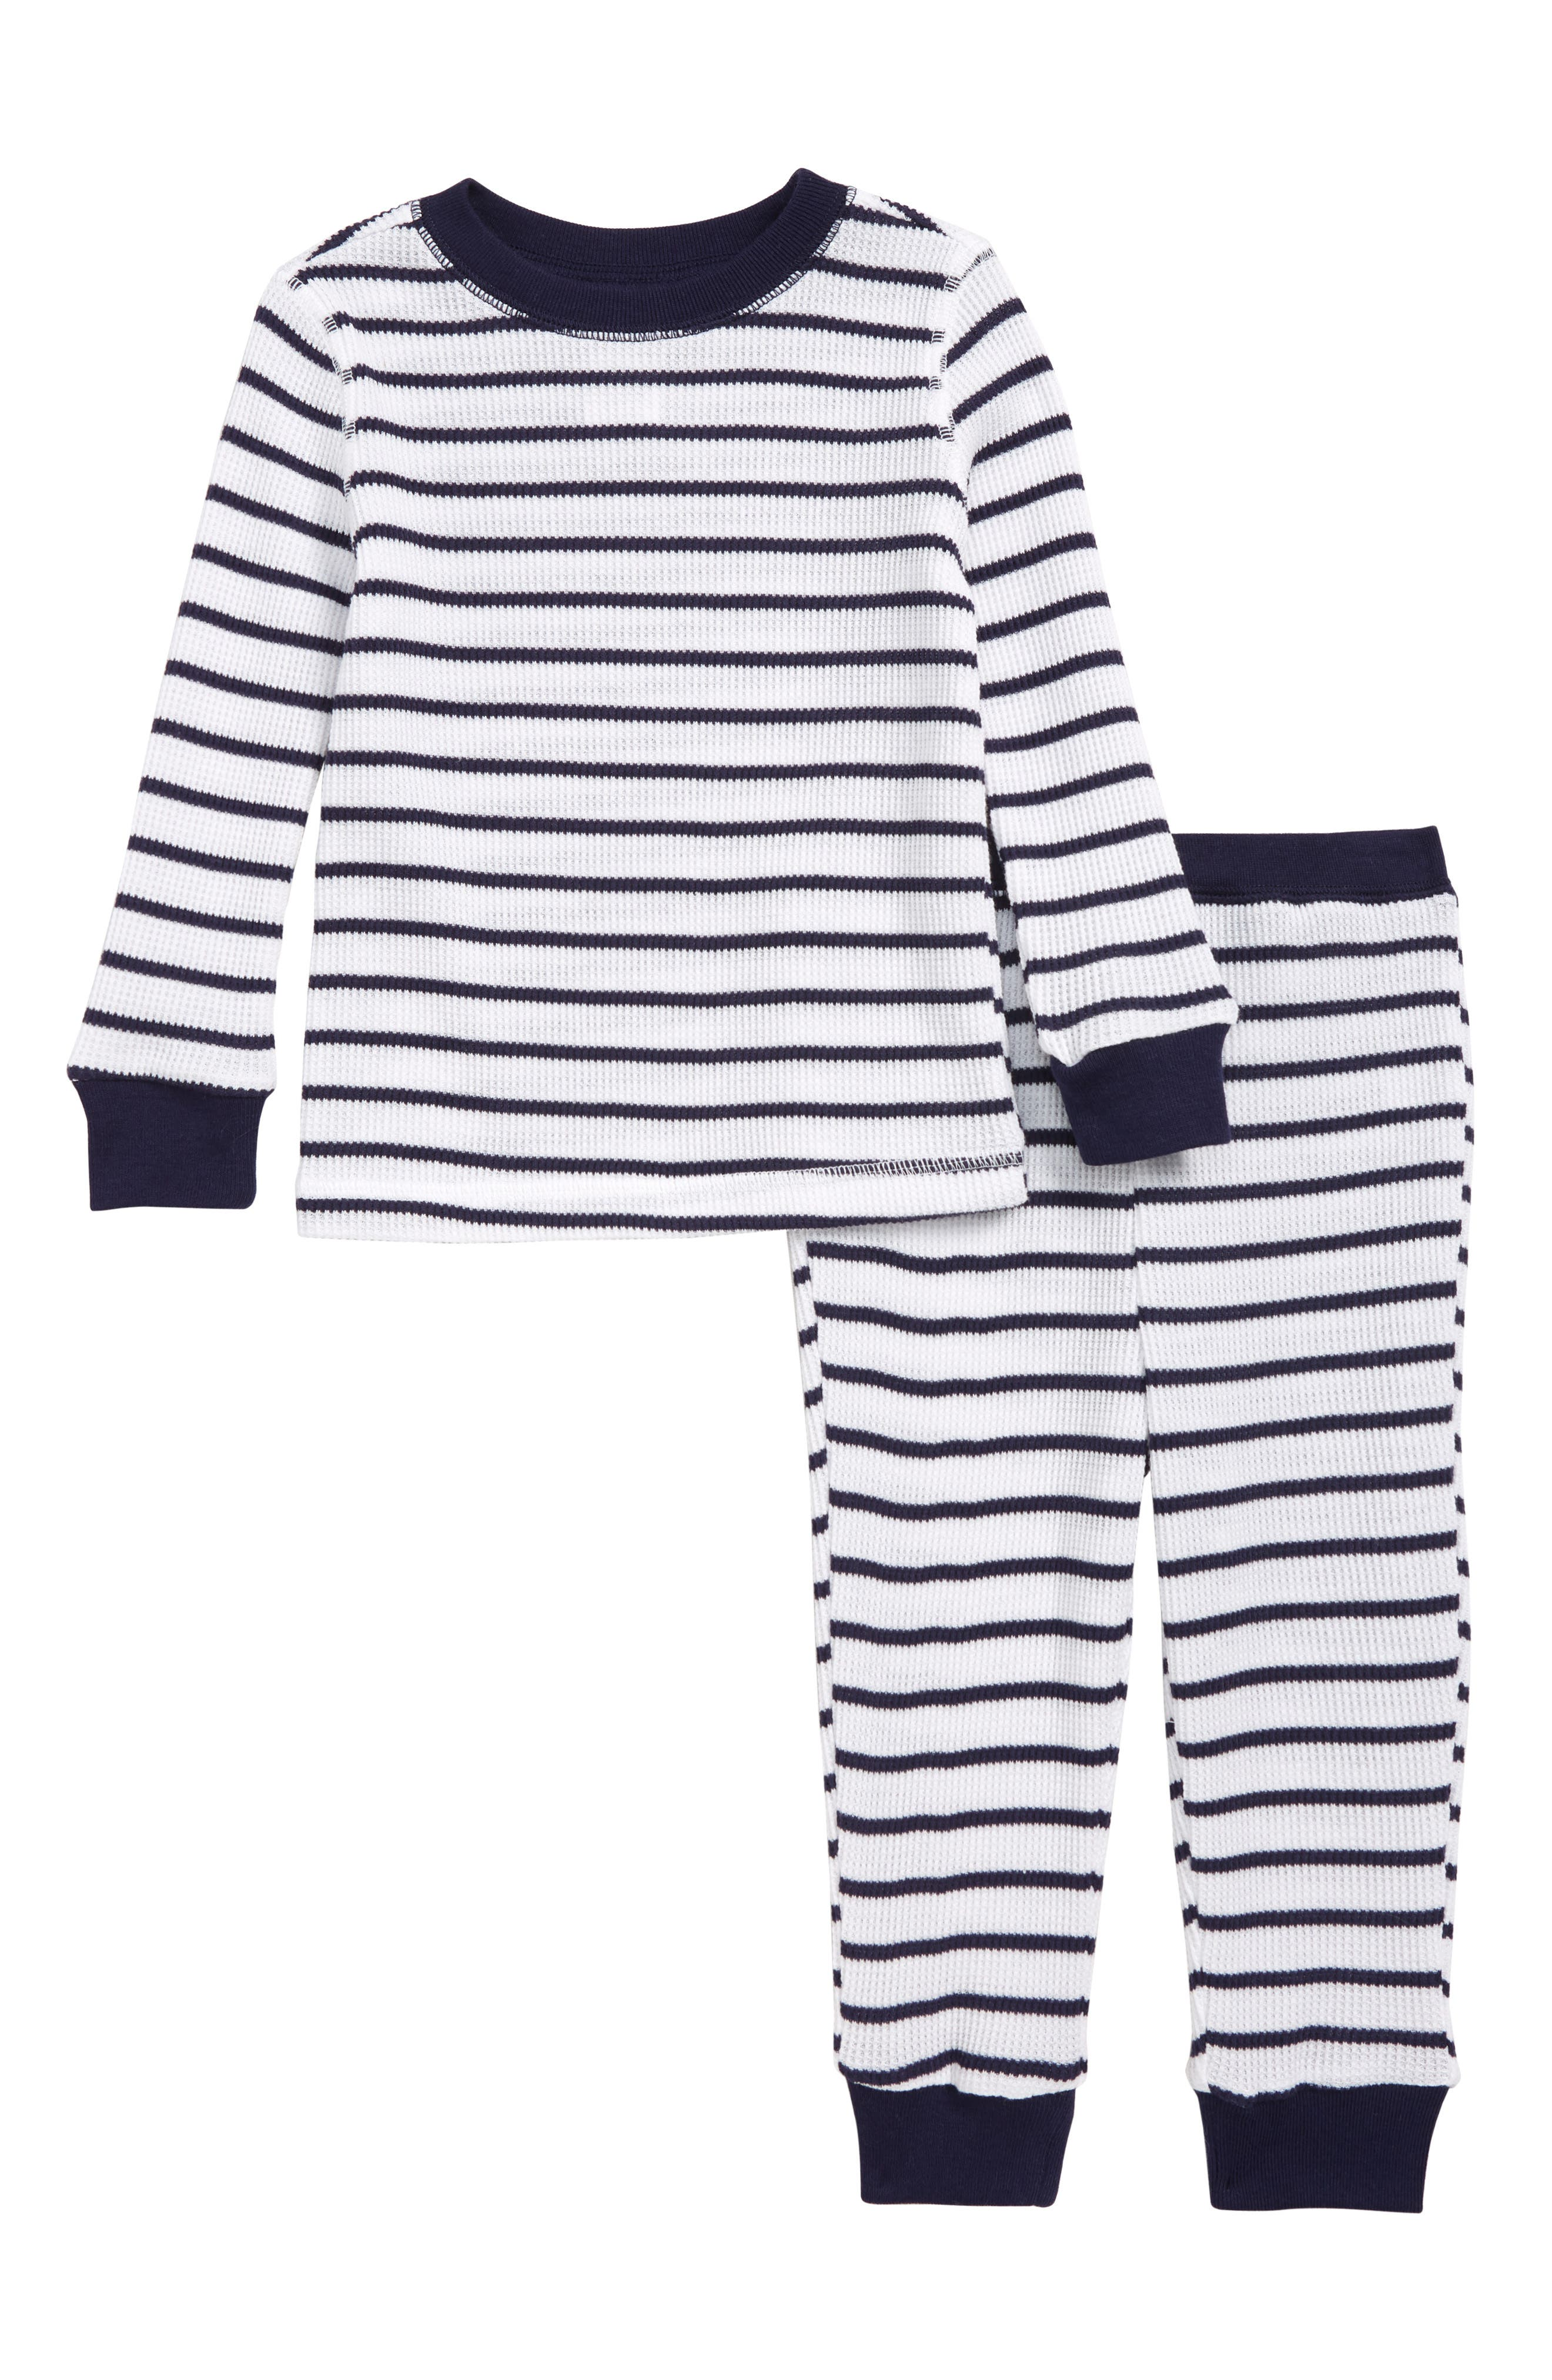 Fitted Thermal Two-Piece Pajamas,                             Main thumbnail 1, color,                             NAVY AND WHITE STRIPE